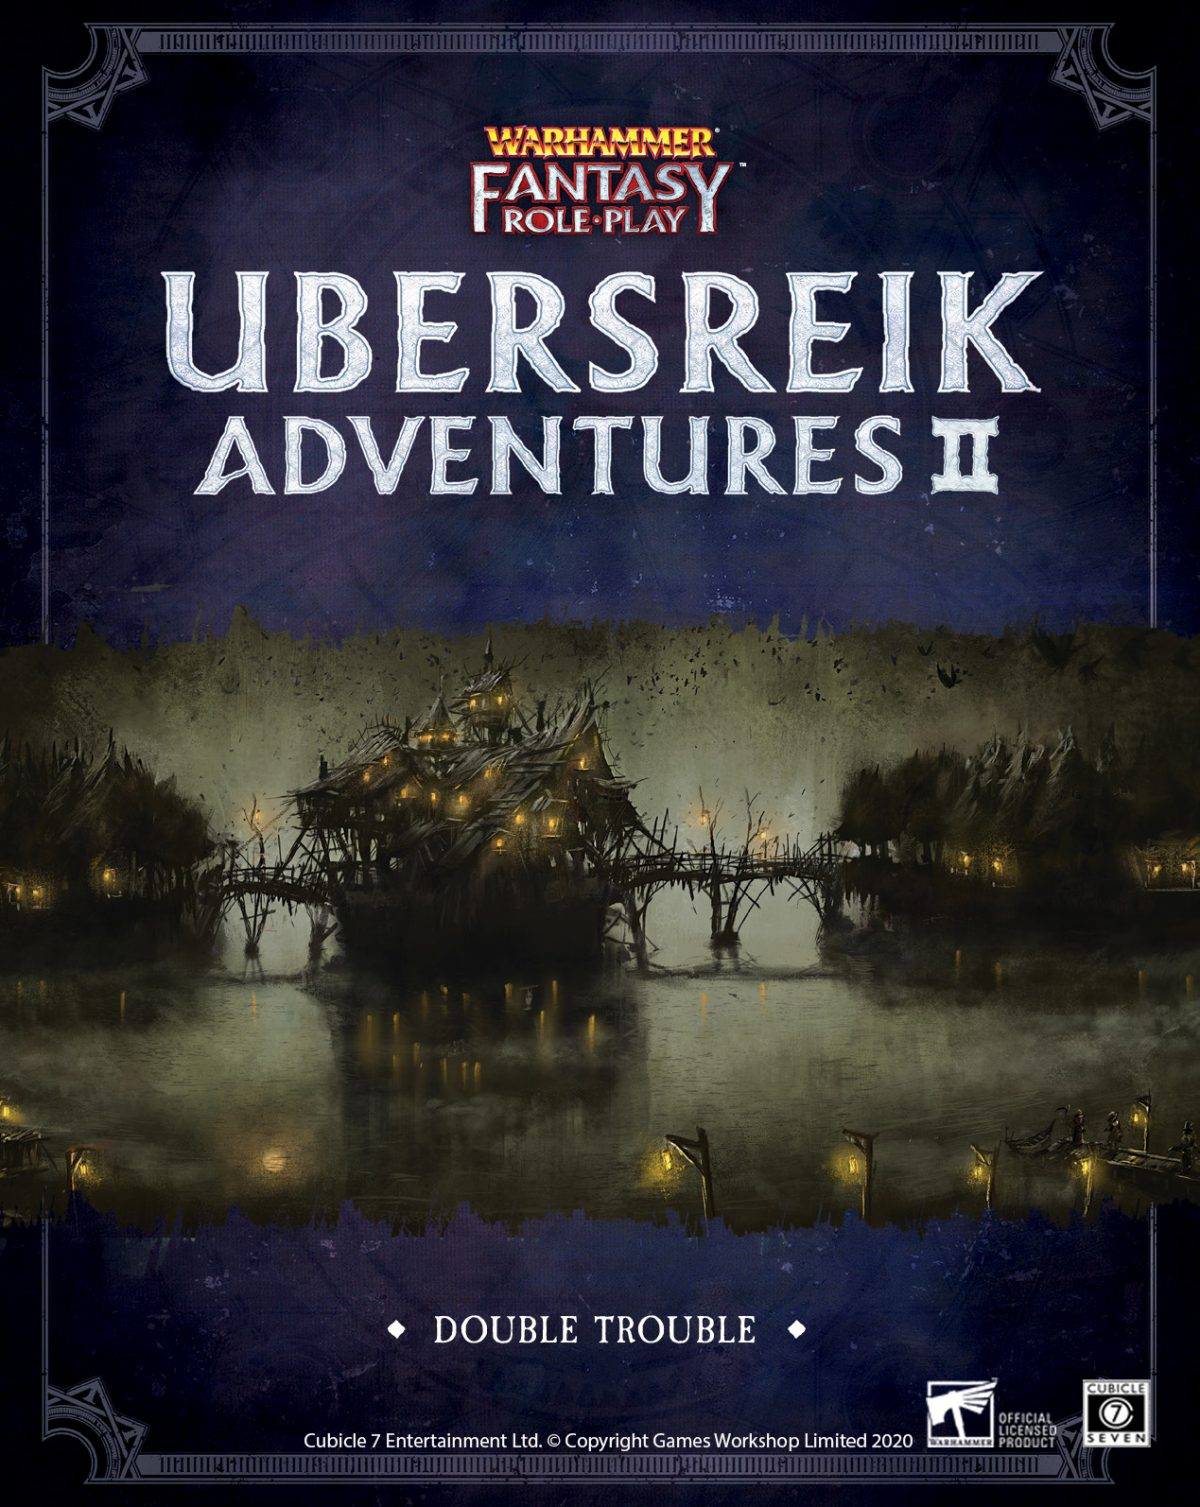 WFRP Ubersreik Adventures II – Double Trouble